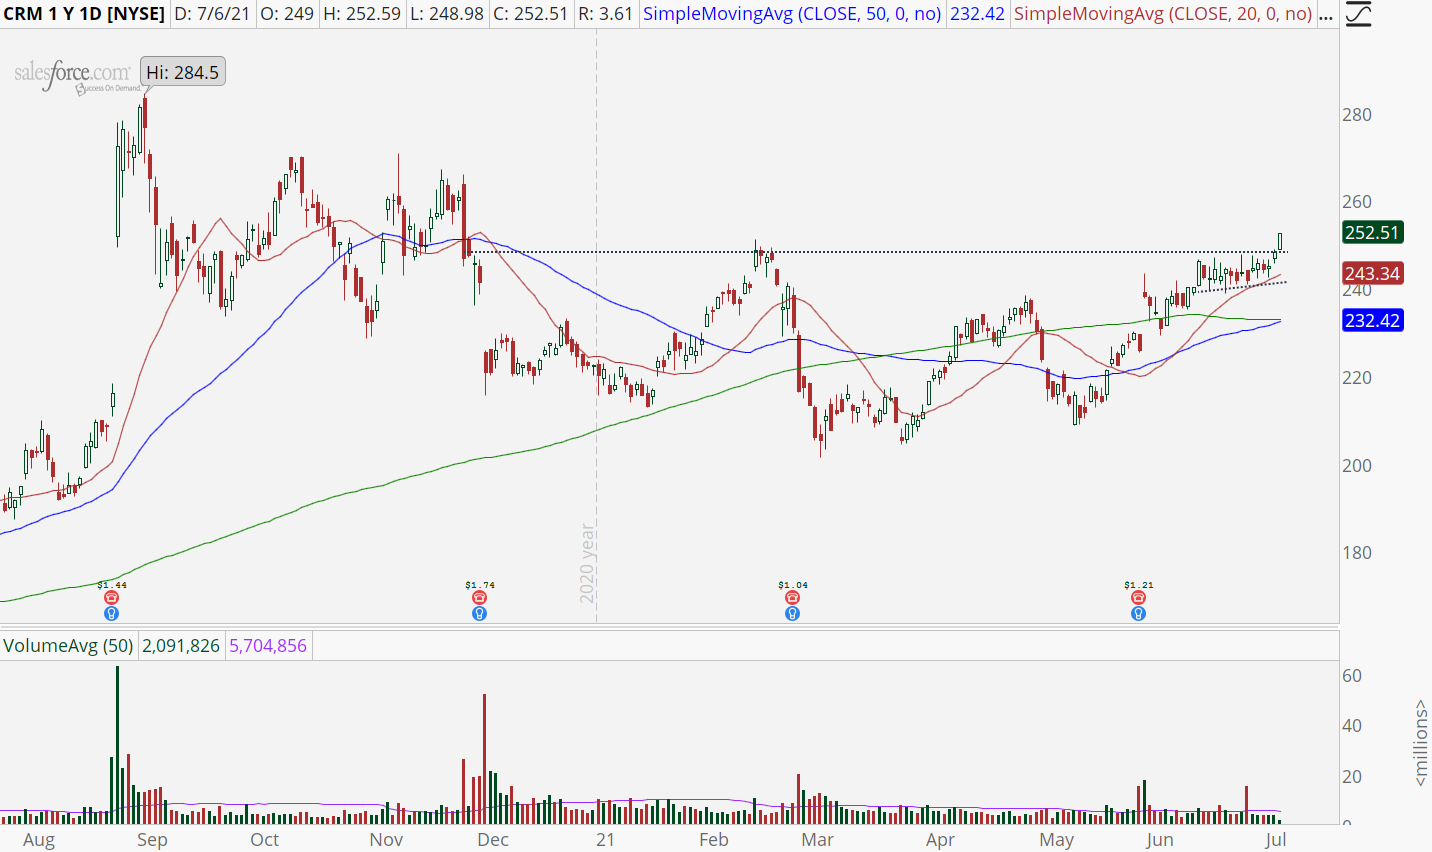 Salesforce.com (CRM) with high base breakout